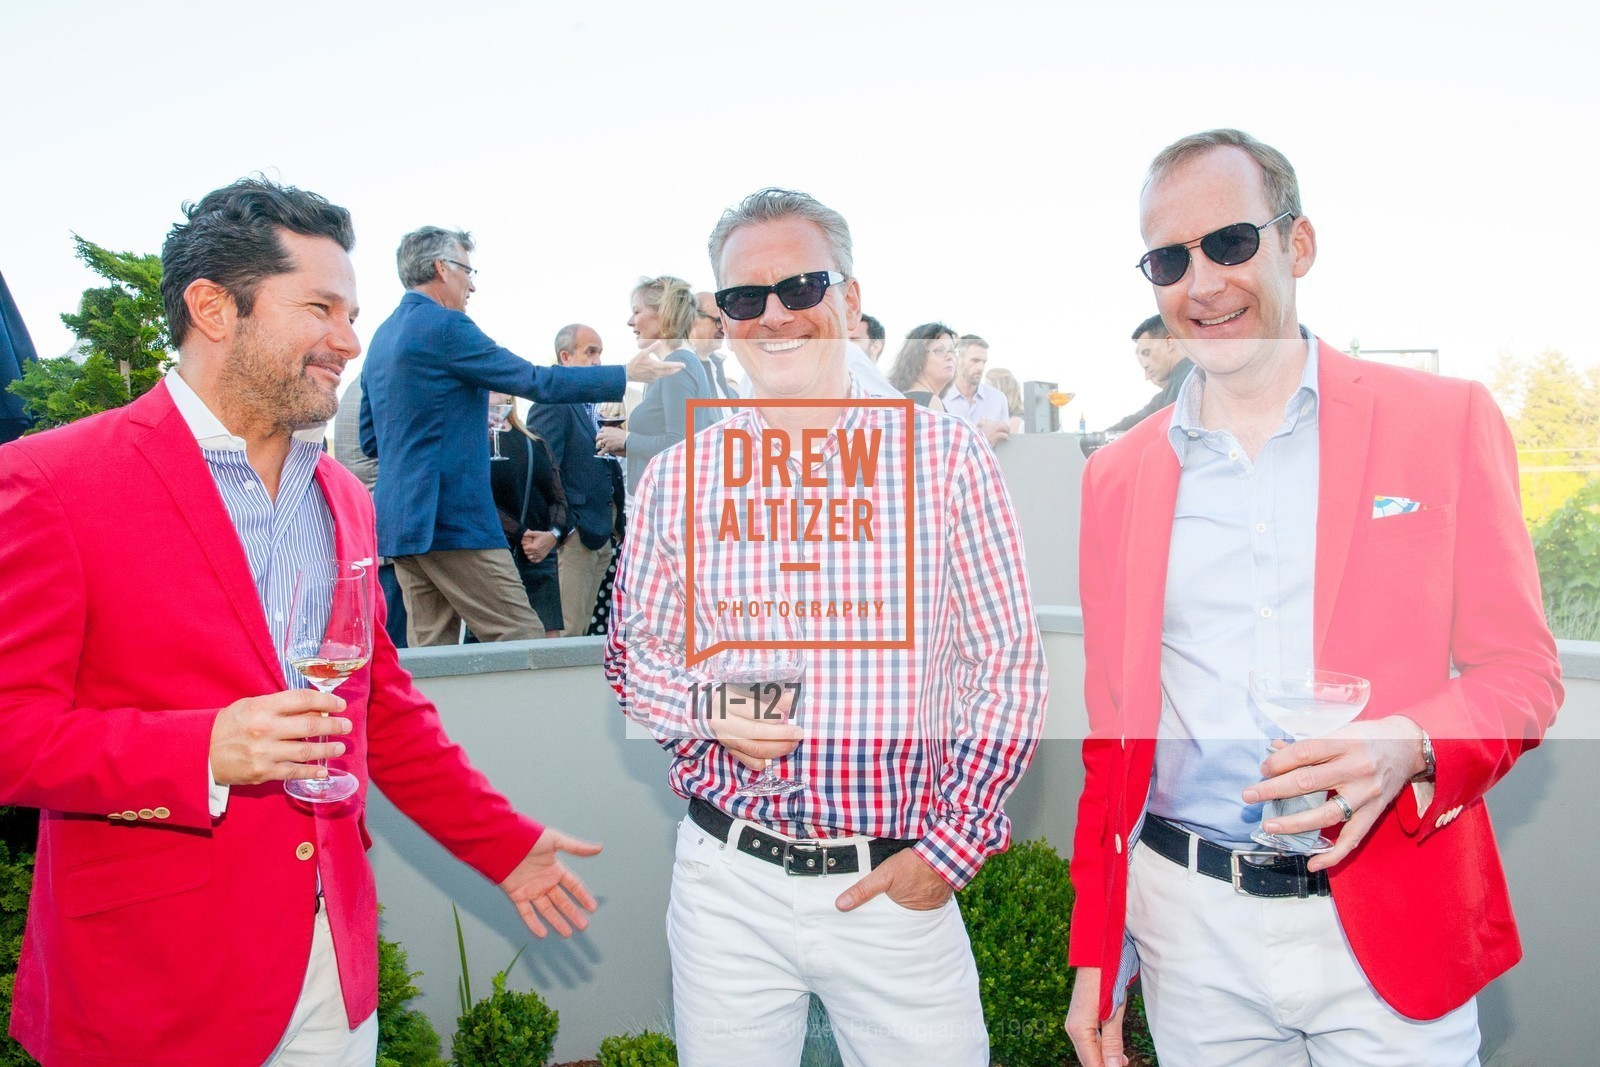 Warren Chase, Oliver Clode, James Schroeder, An Evening in the Vineyard hosted by JACK CALHOUN & TRENT NORRIS, Jack Calhoun & Trent Norris Vineyard. 3393 Dry Creek Road, Healdsburg CA 95448, May 22nd, 2015,Drew Altizer, Drew Altizer Photography, full-service agency, private events, San Francisco photographer, photographer california